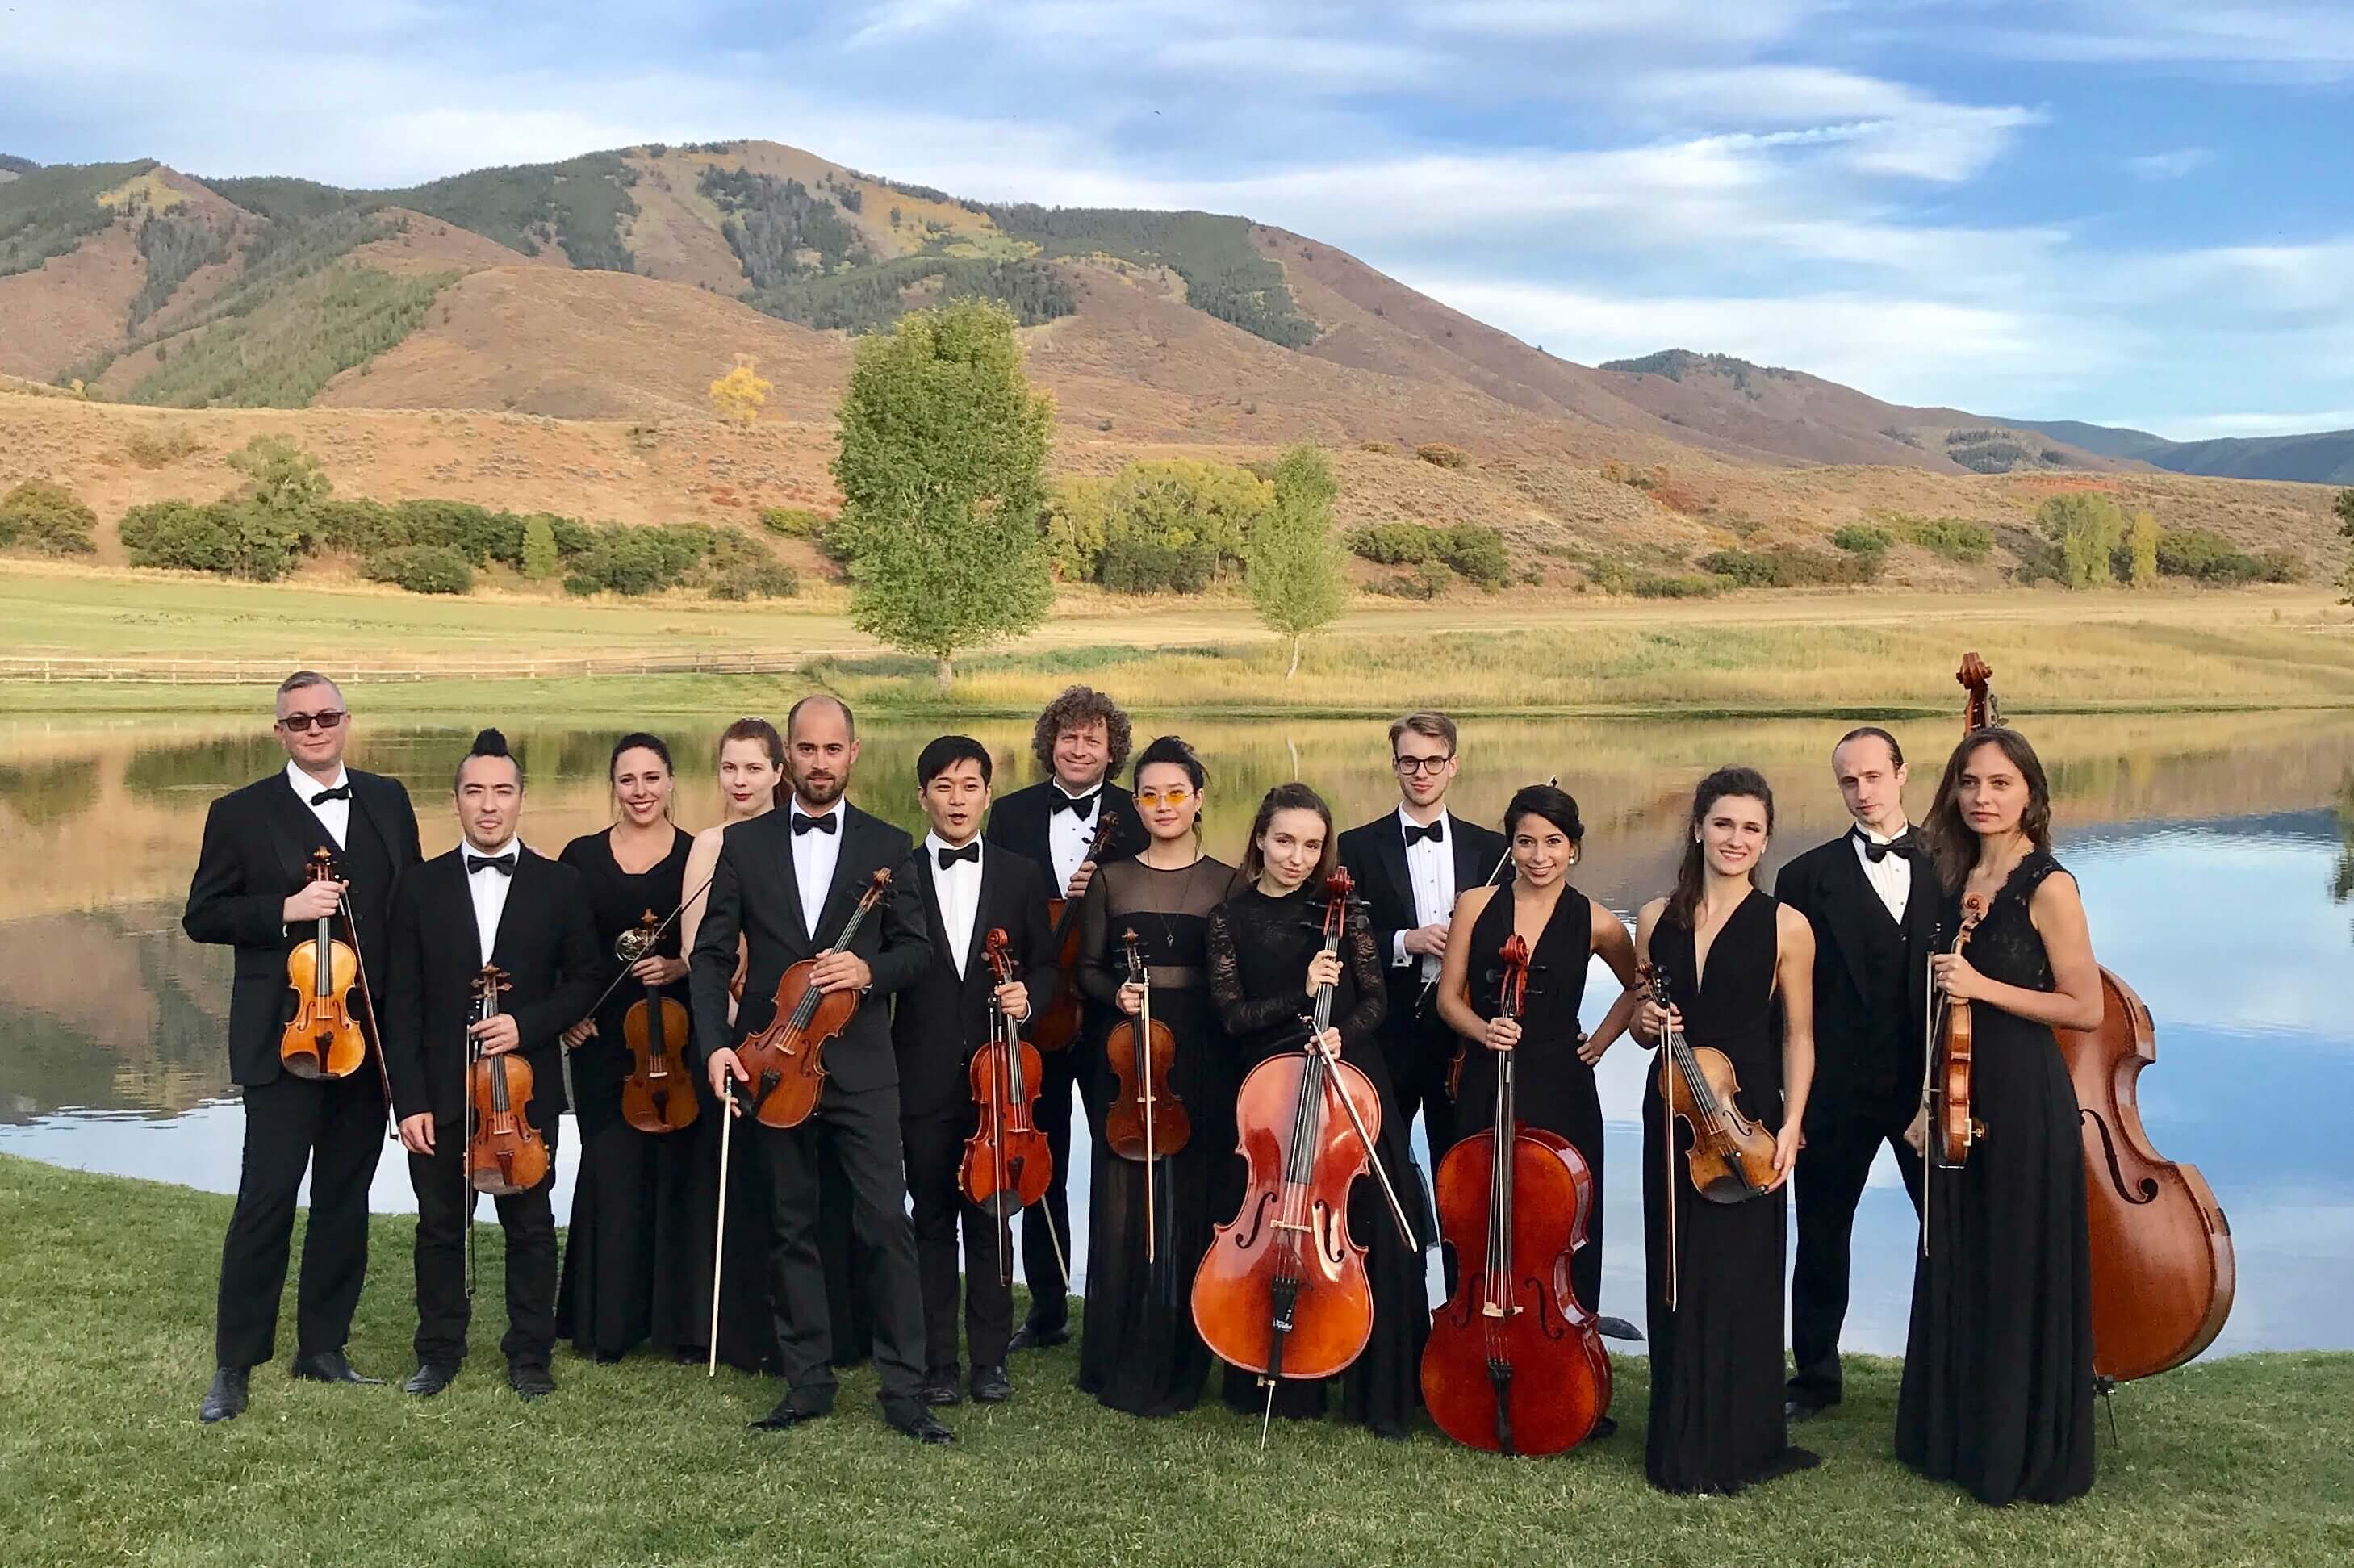 wedding orchestra in aspen, co